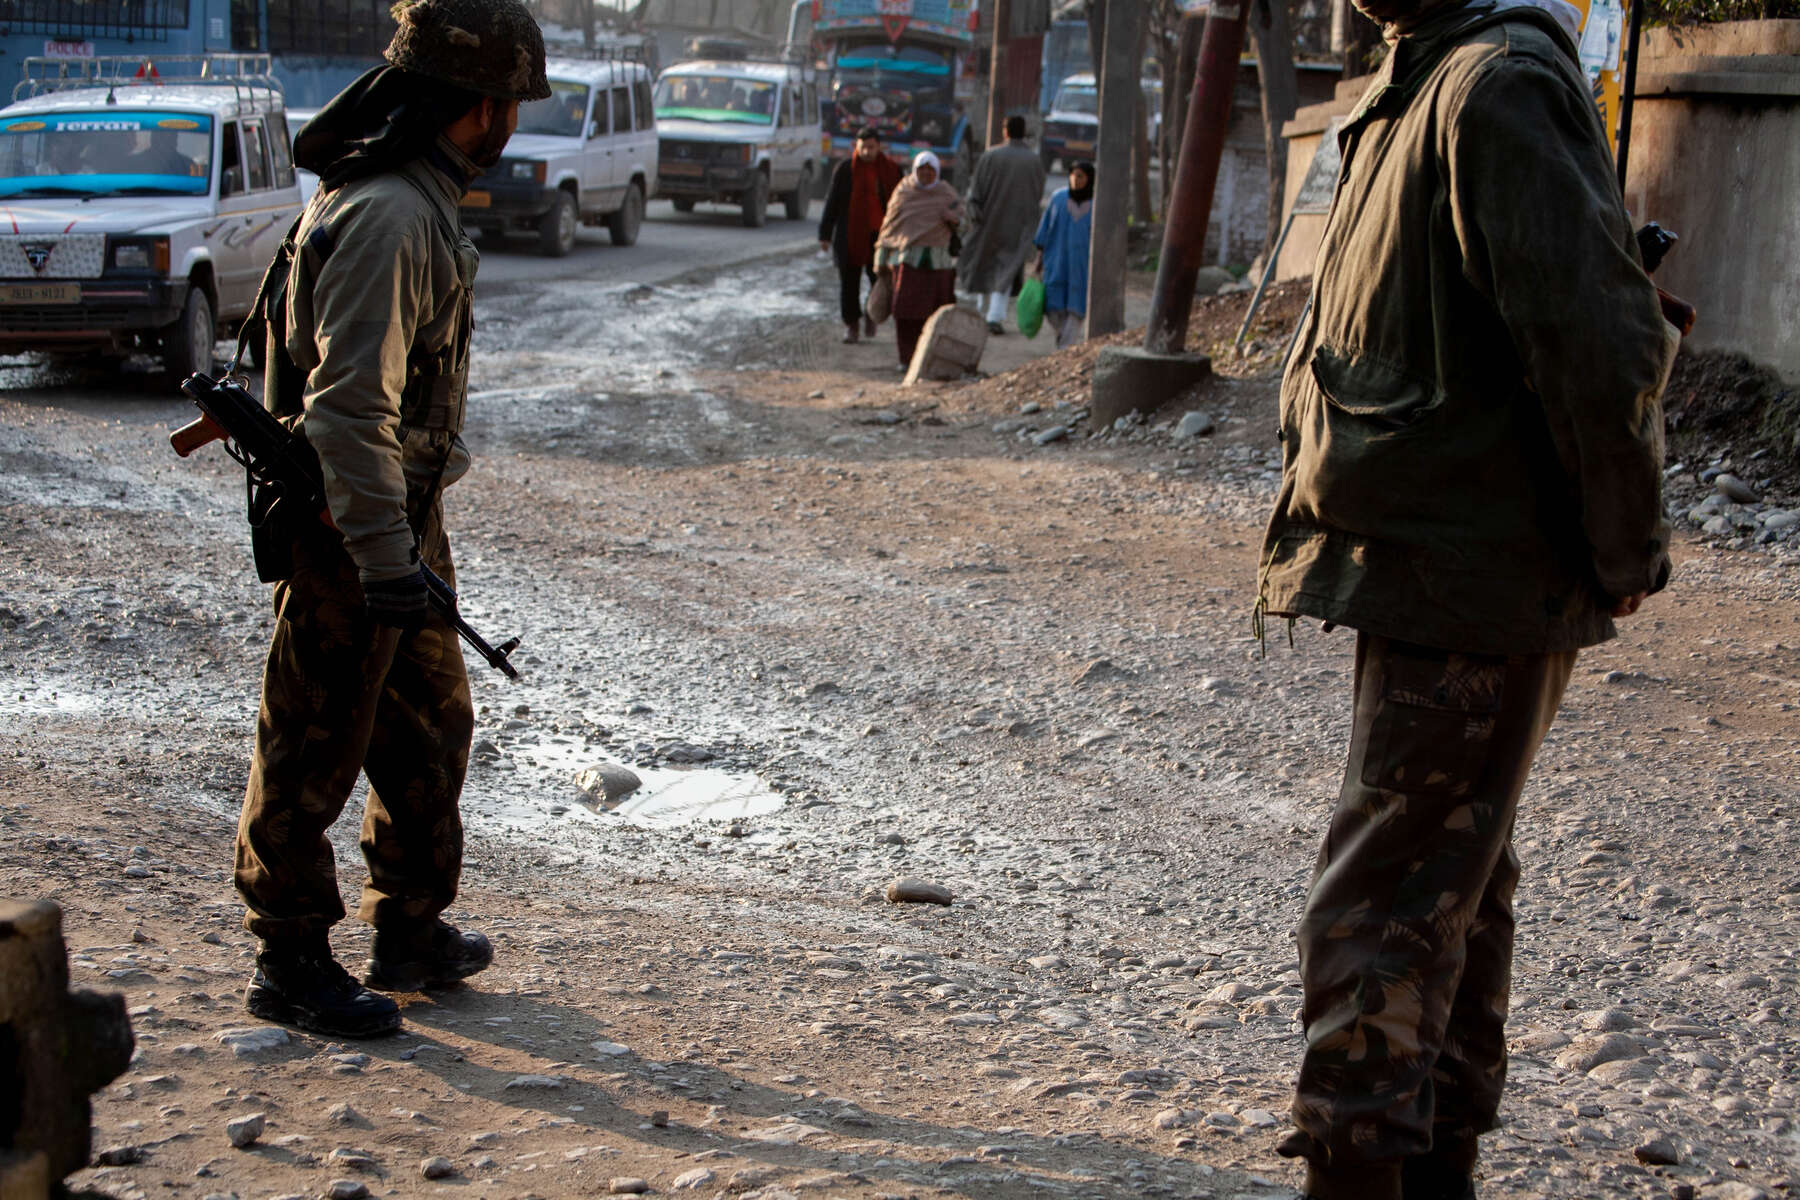 A constant presence. India's Military occupies Srinagar's Theaters, Schools, Graveyards, and Neighborhoods. Residents dodge potholes, encircling tanks, on their way home from work.